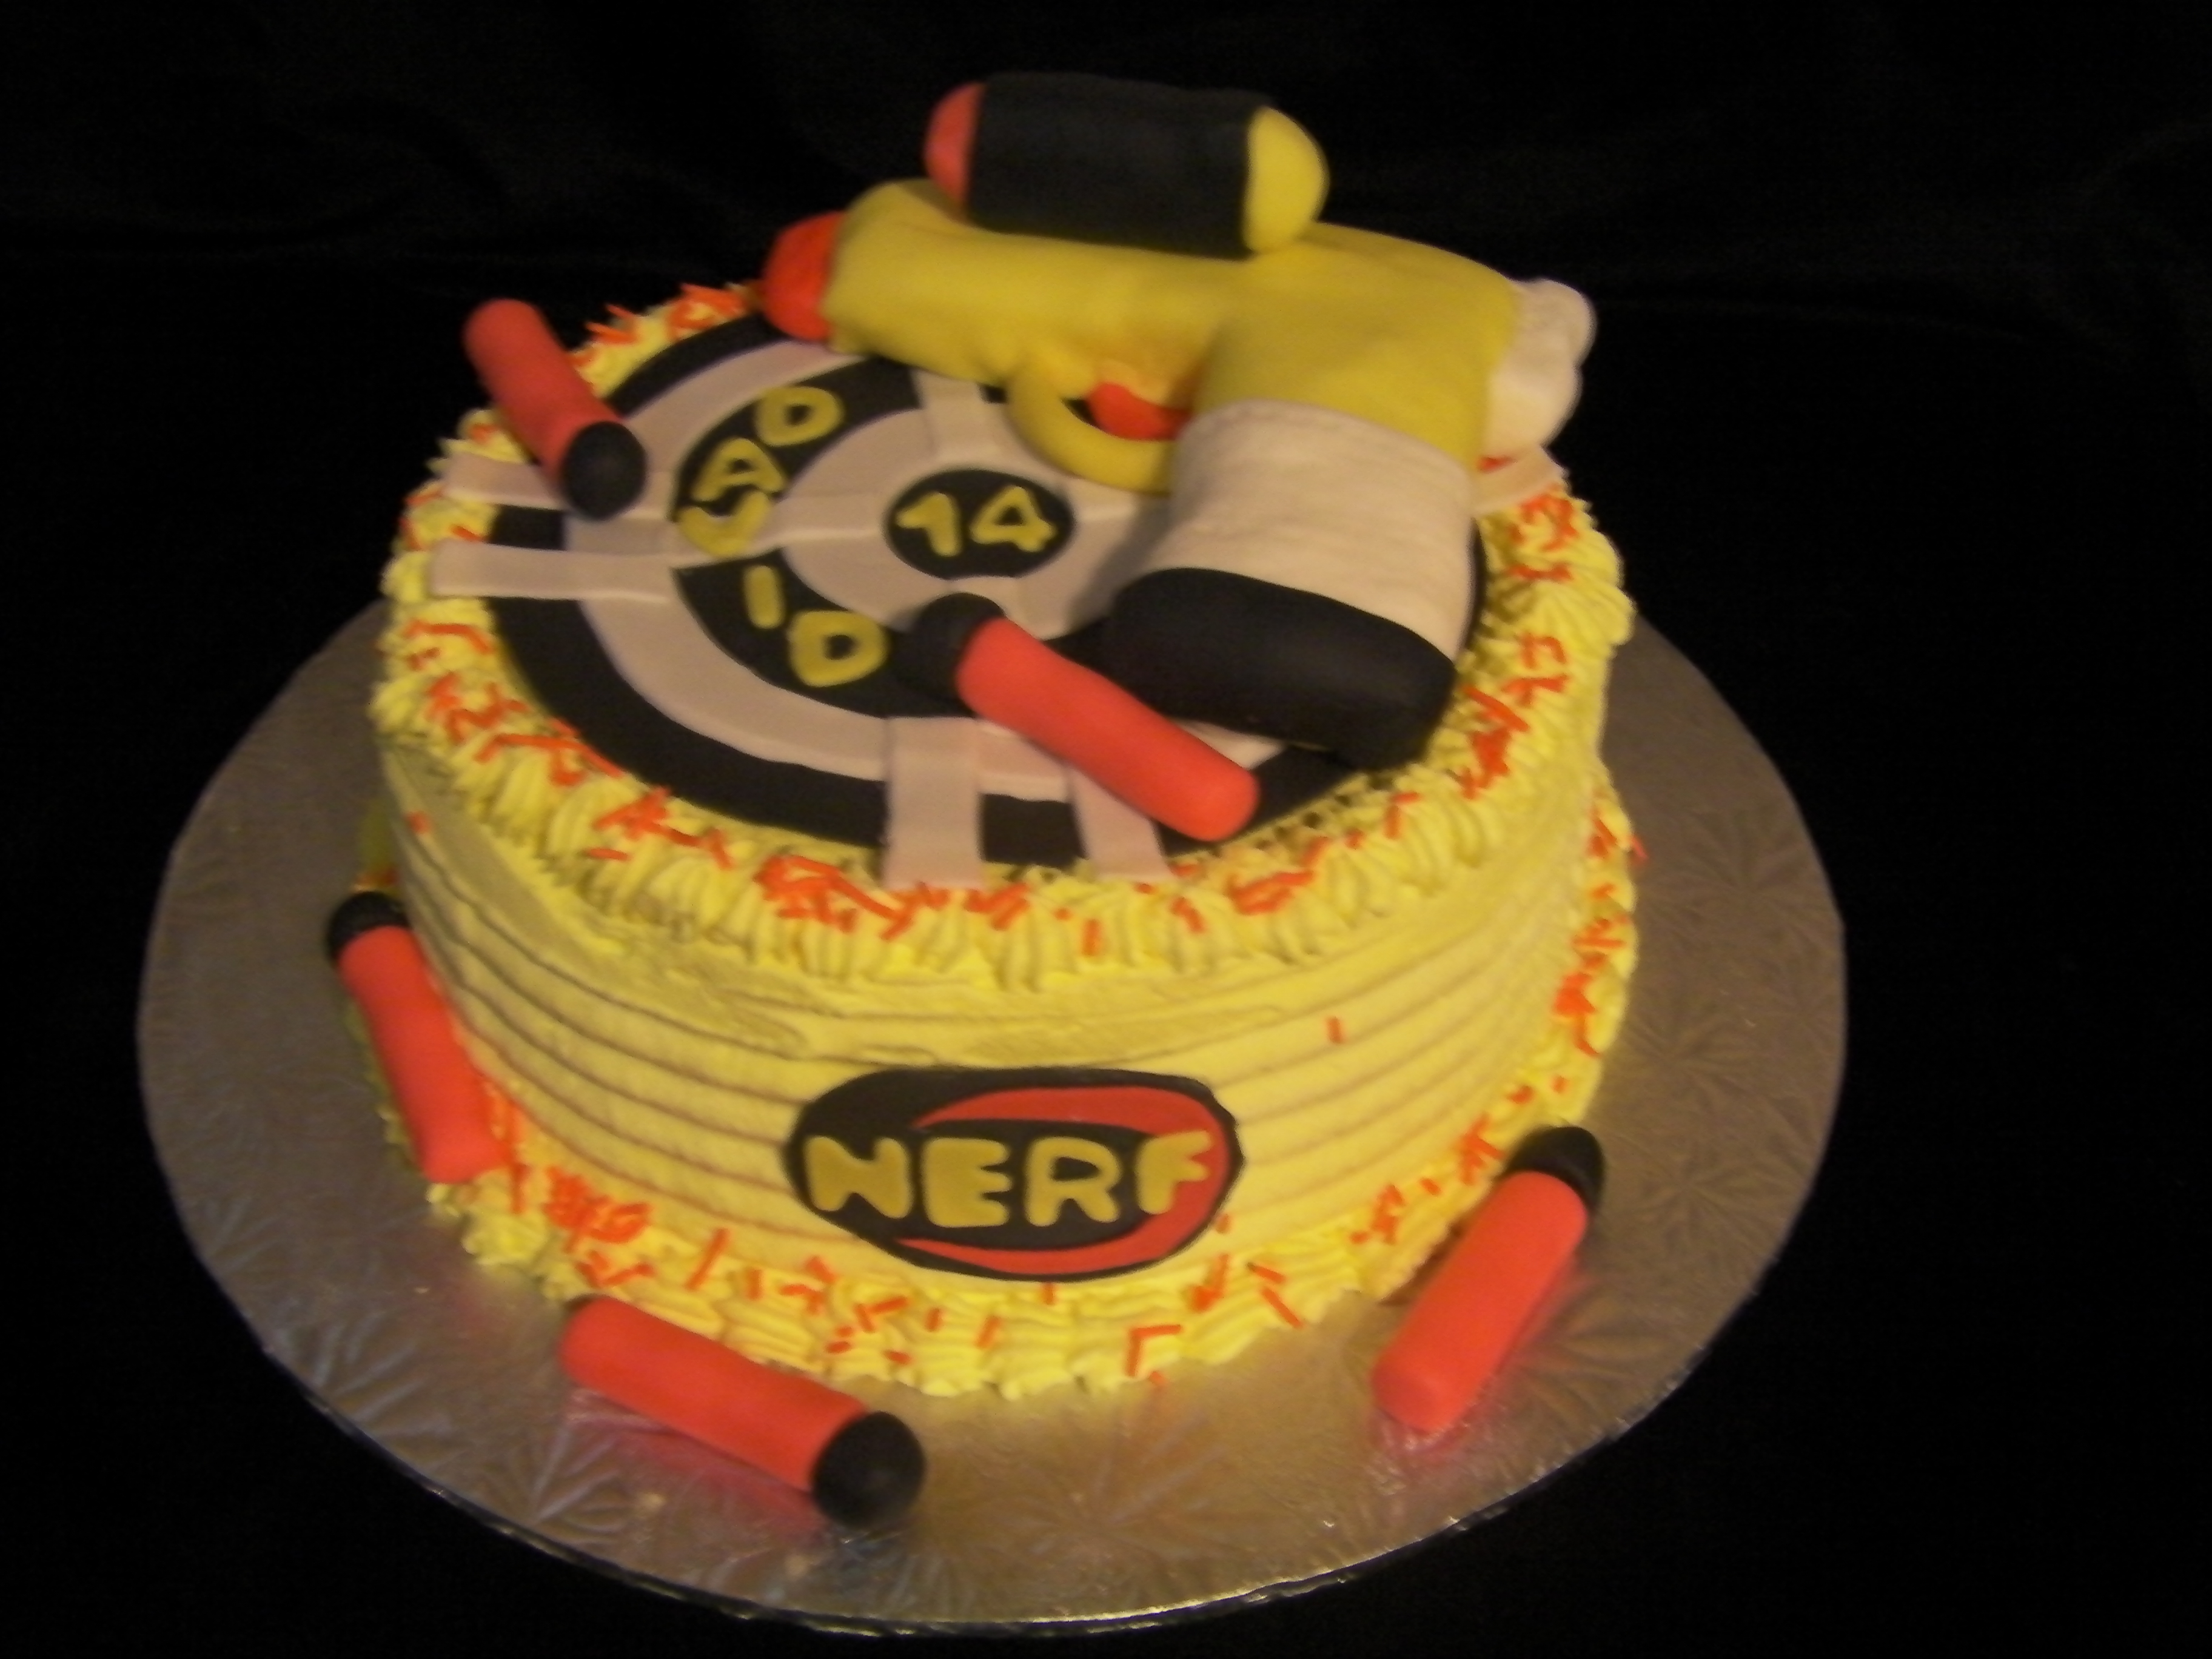 Nerf Cake Little Taste of Heaven